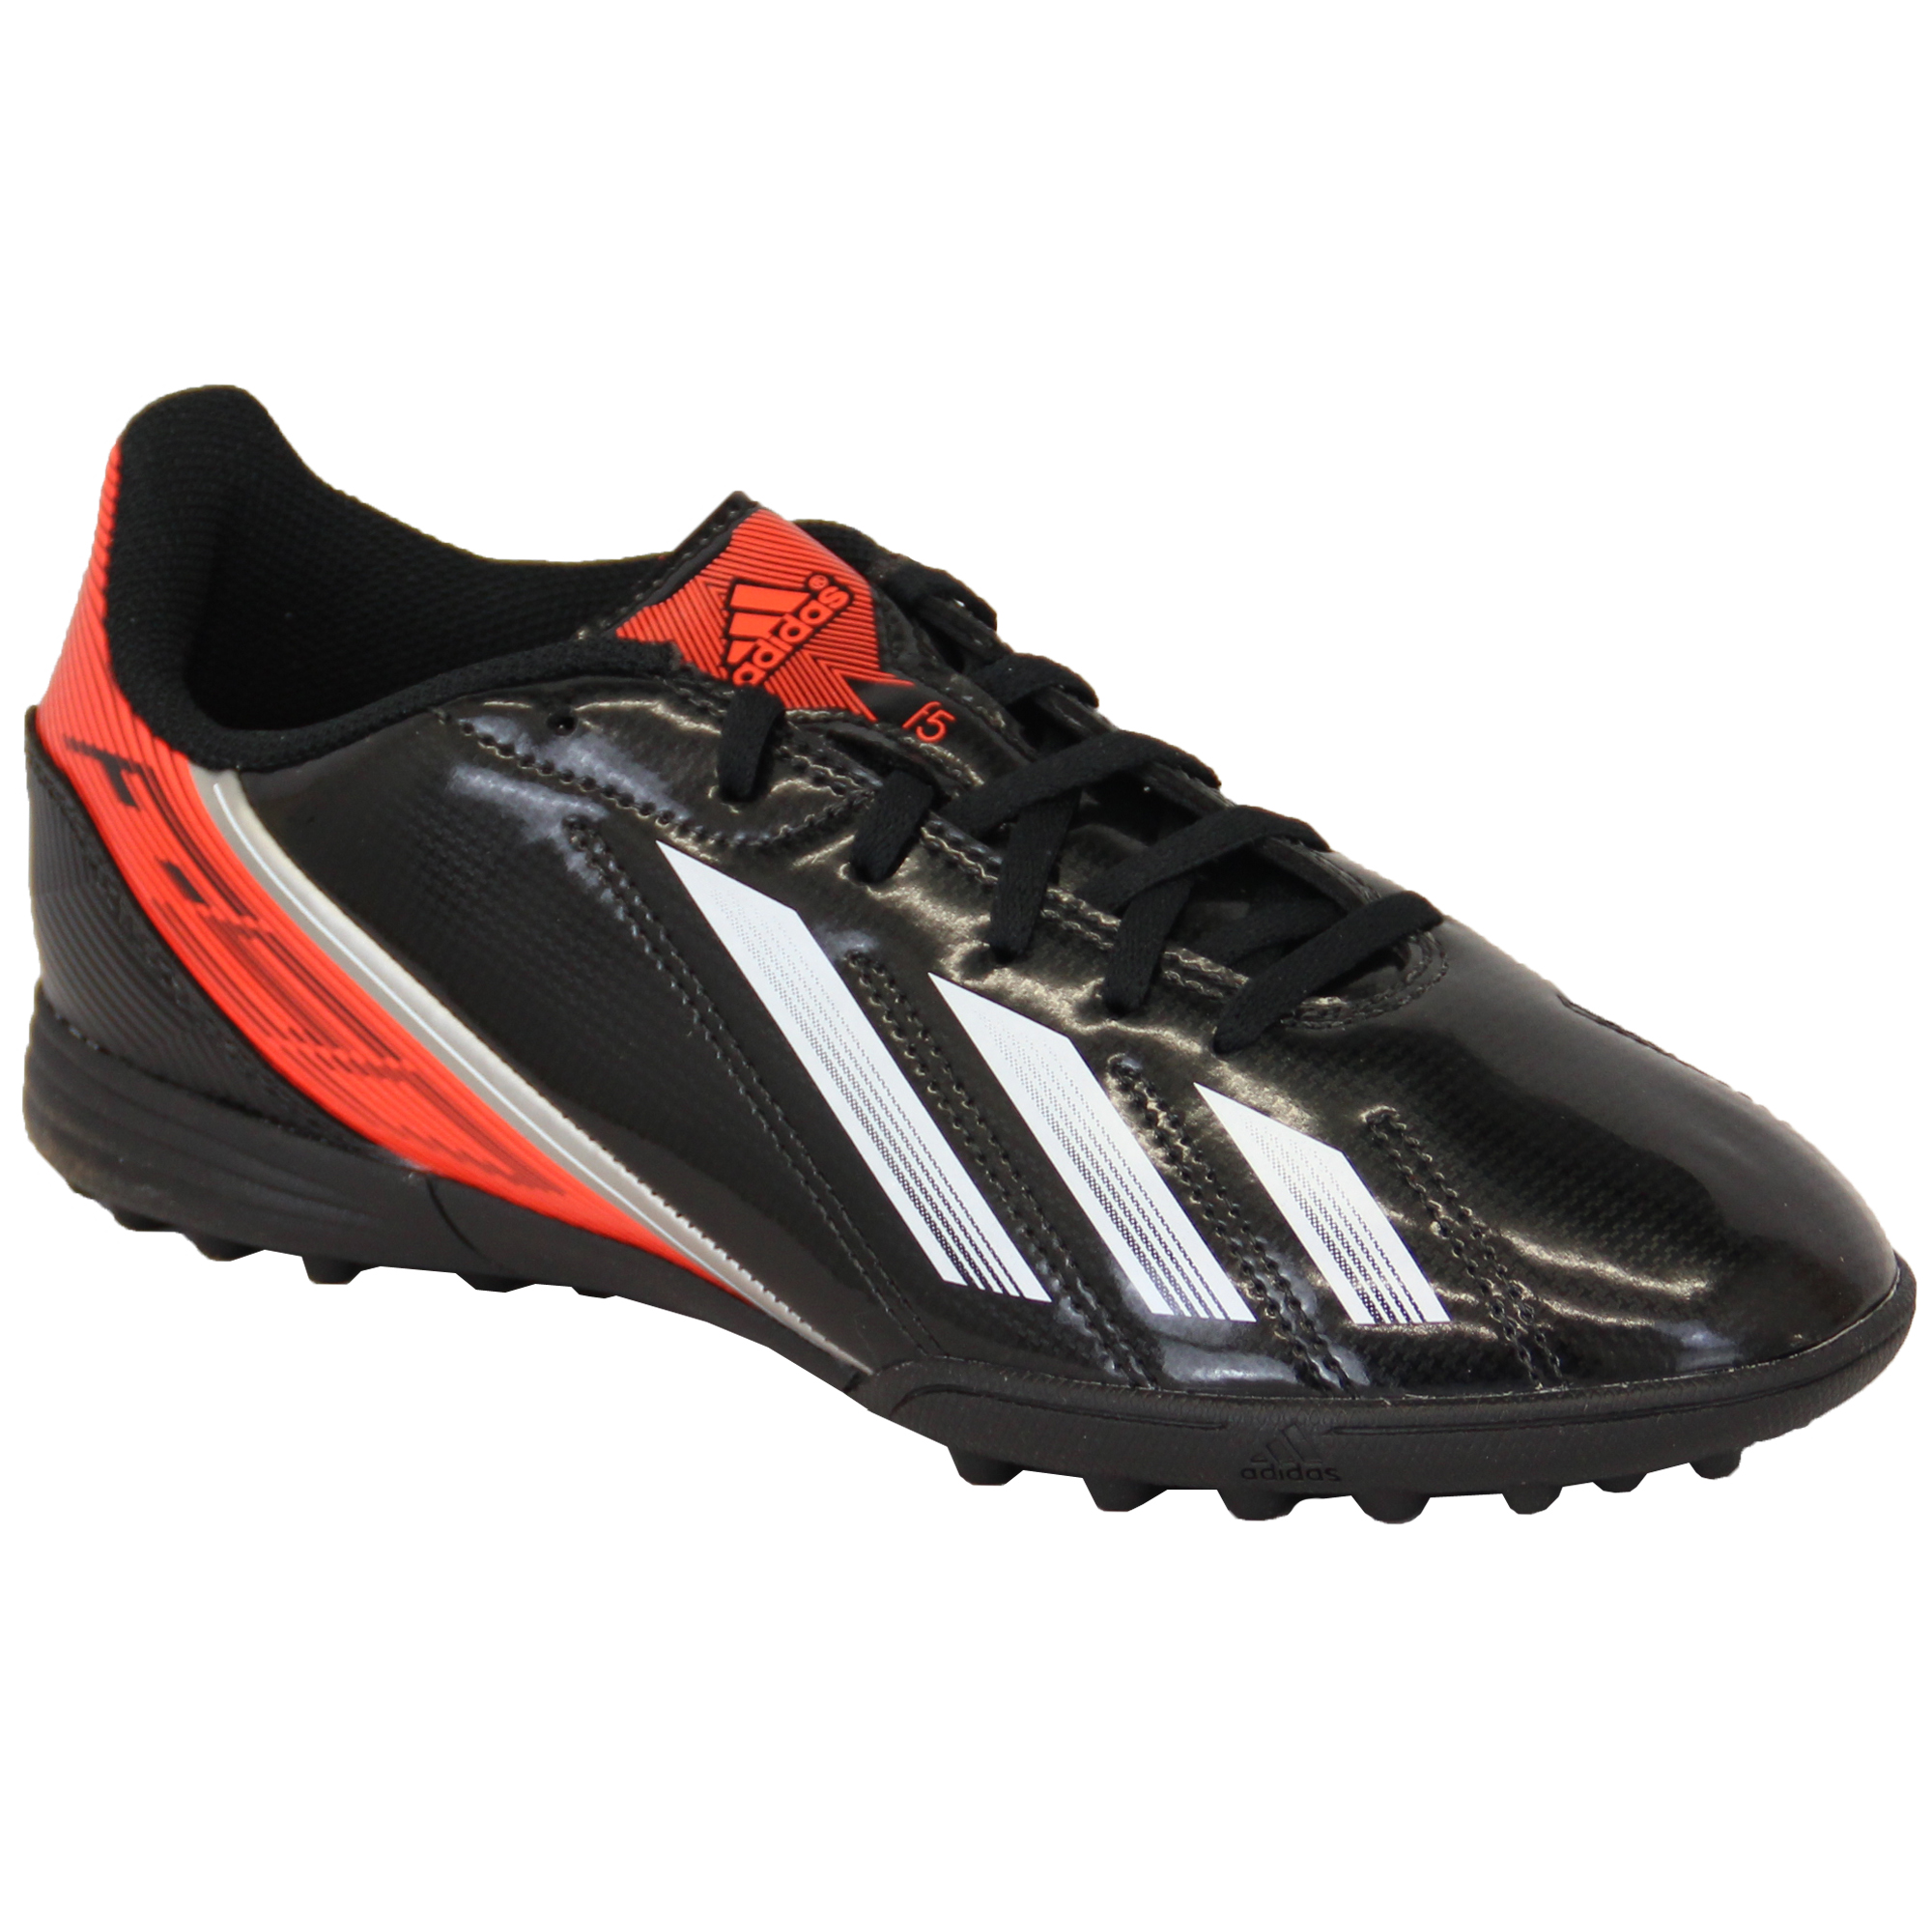 Youth Turf Shoes Girls